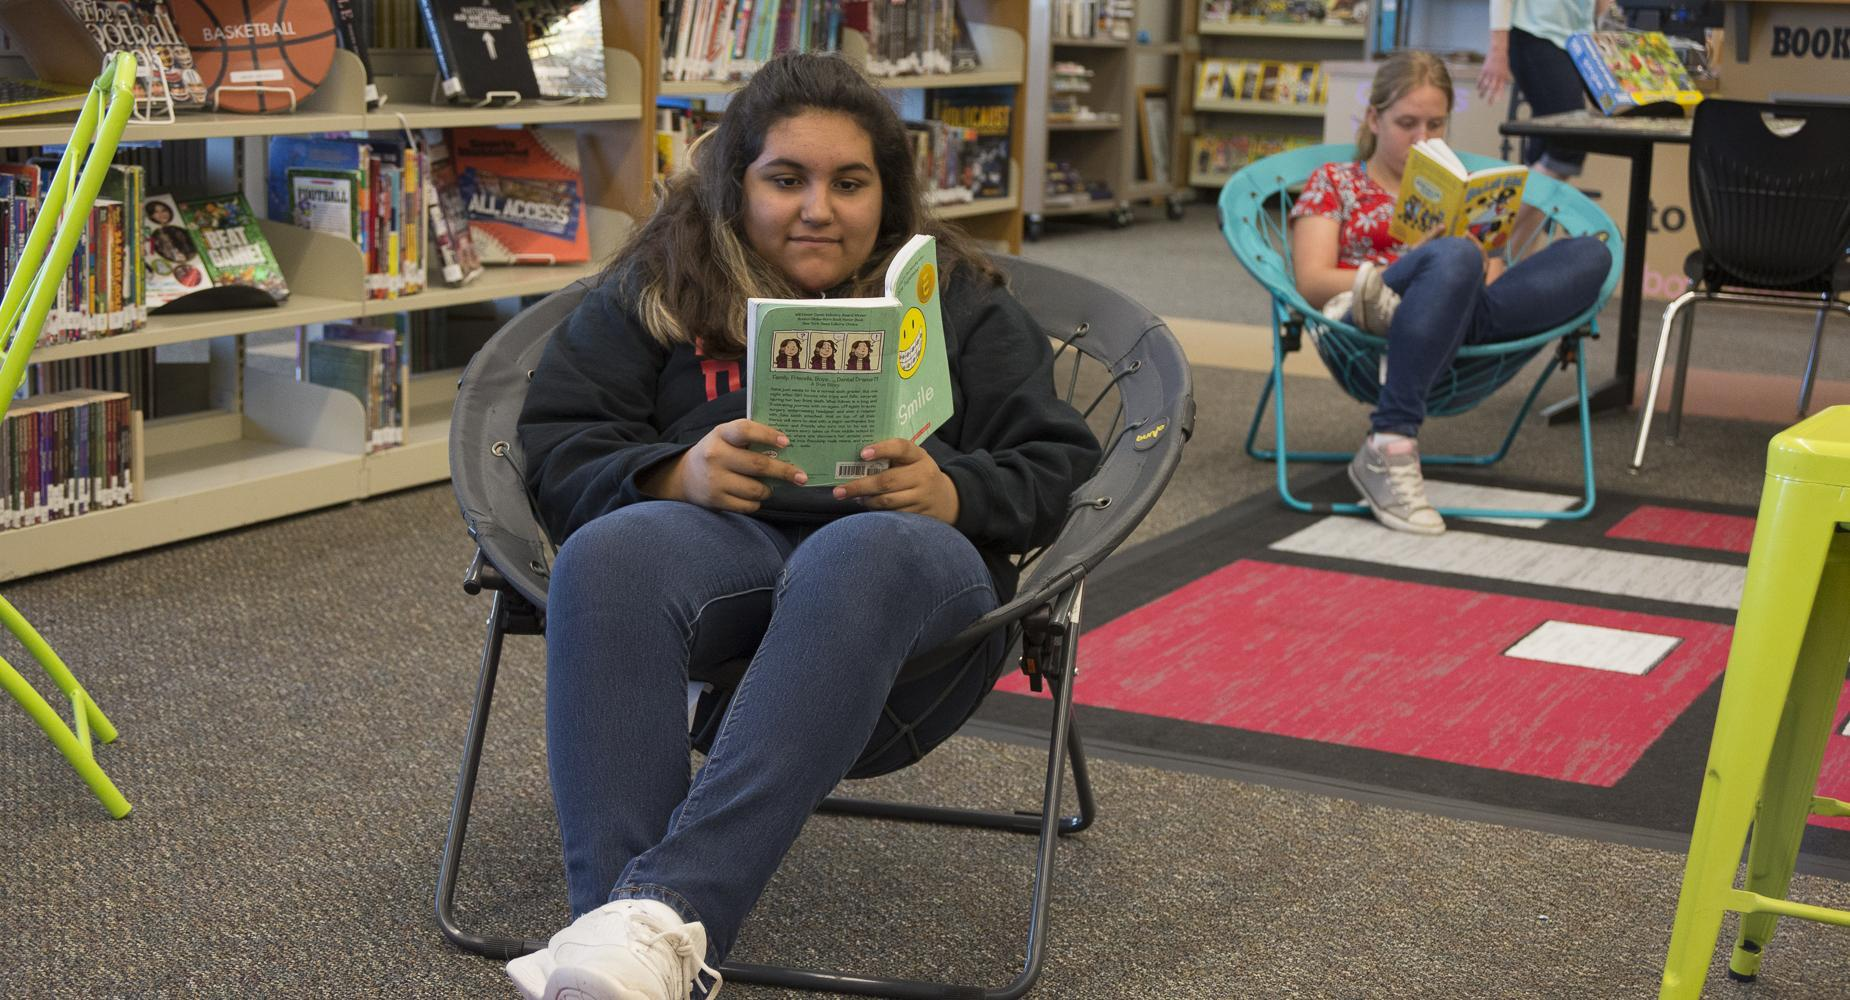 Girl reads a book in the library